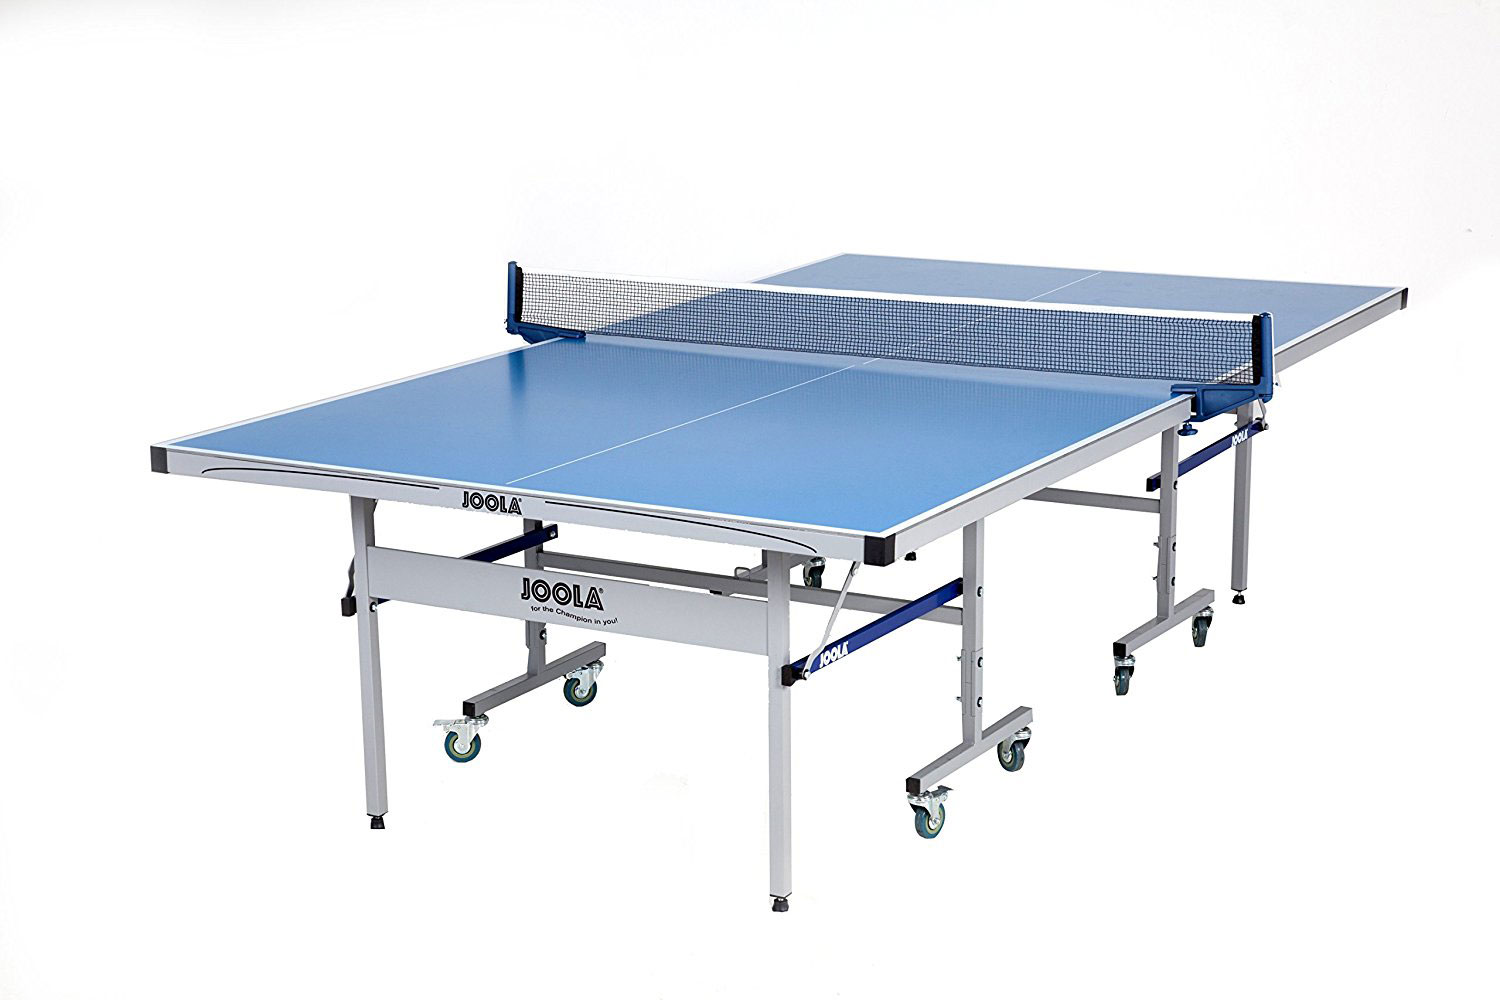 JOOLA-Nova-DX-OutdoorIndoor-All-Weather-Table-Tennis-Table